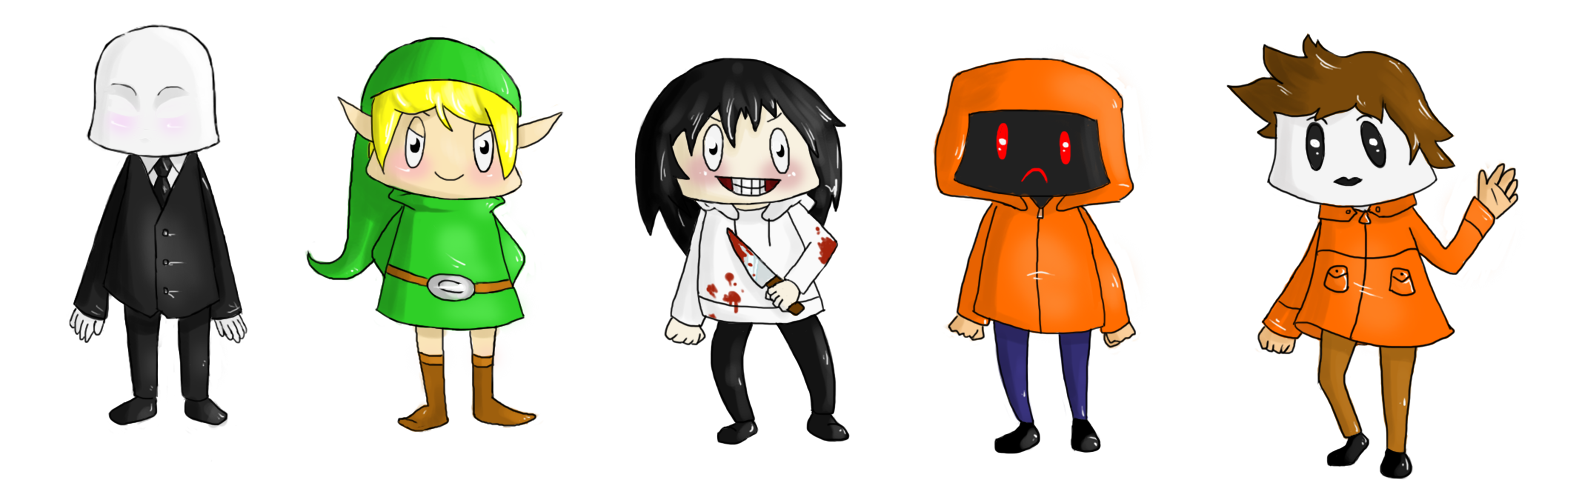 creepy pasta chibis by bellpup